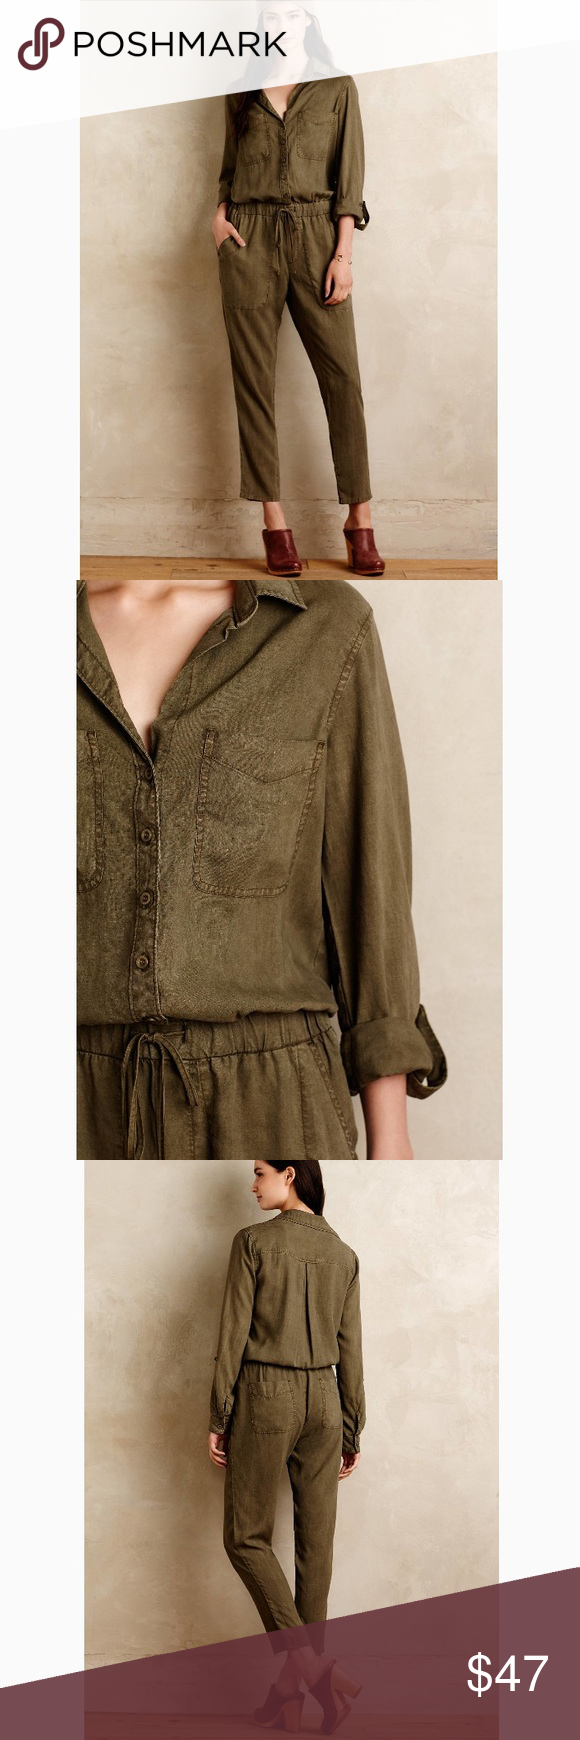 """6e3bbe836633 NWOT Anthropologie Cloth   Stone Green Jumpsuit Brand New Without Tags     Olive green   army green color    waist is adjustable    inseam is 27""""     sleeves ..."""